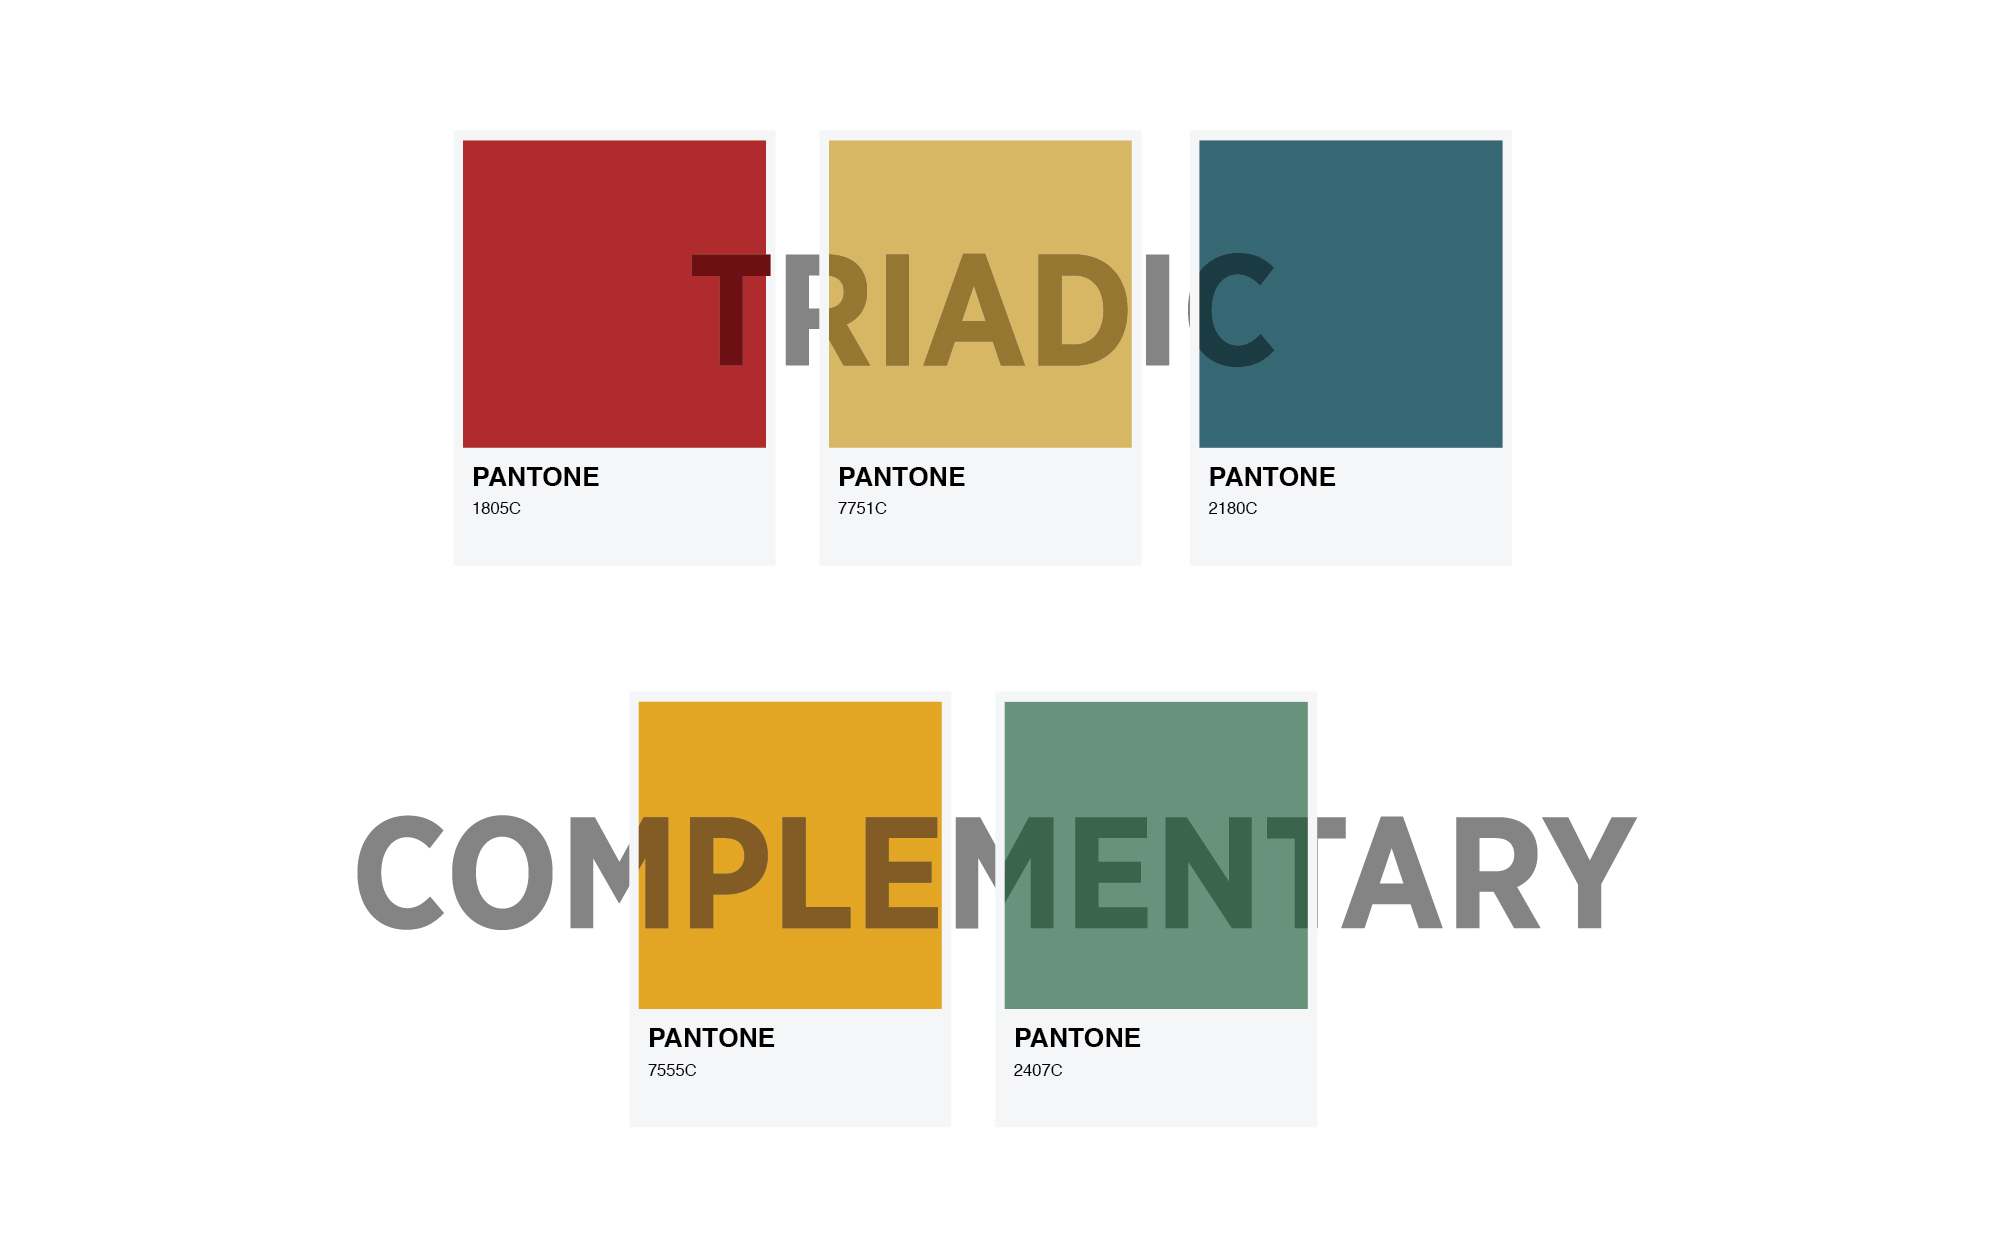 pantone colour swatches indicating triadic and complementary colours